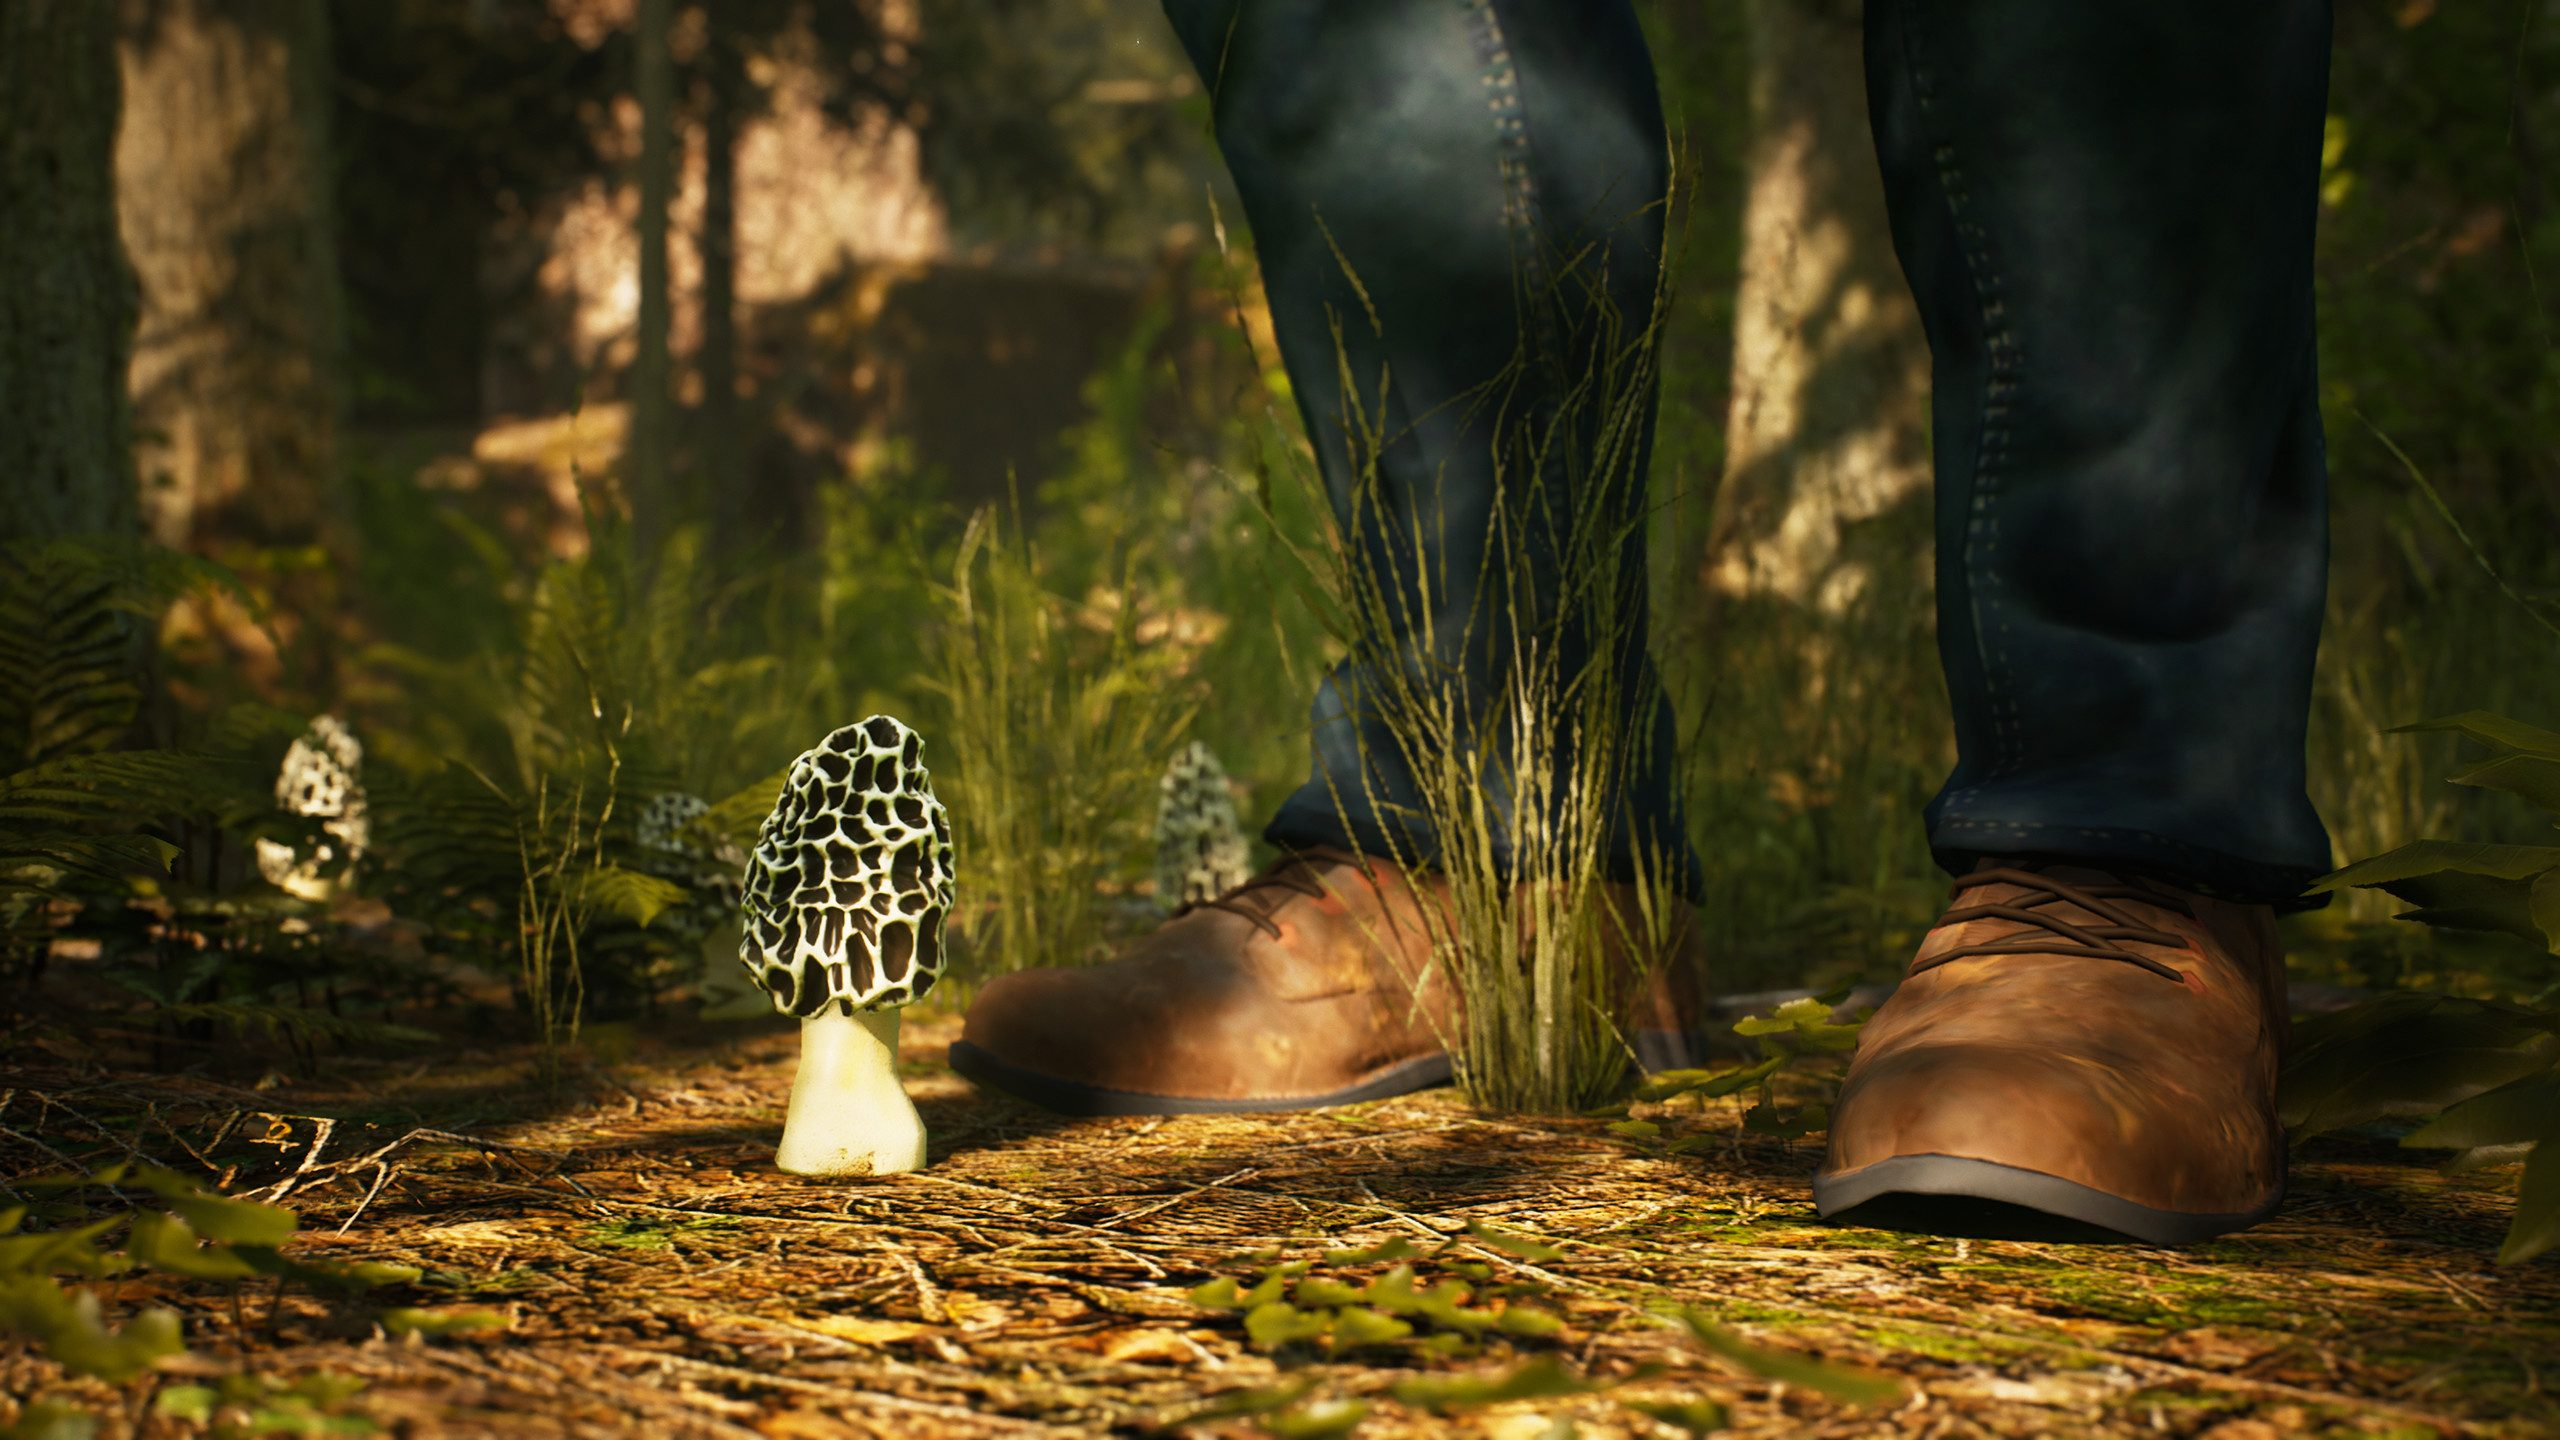 Morels: The Hunt is a Game About Hunting Mushrooms and Taking Photos